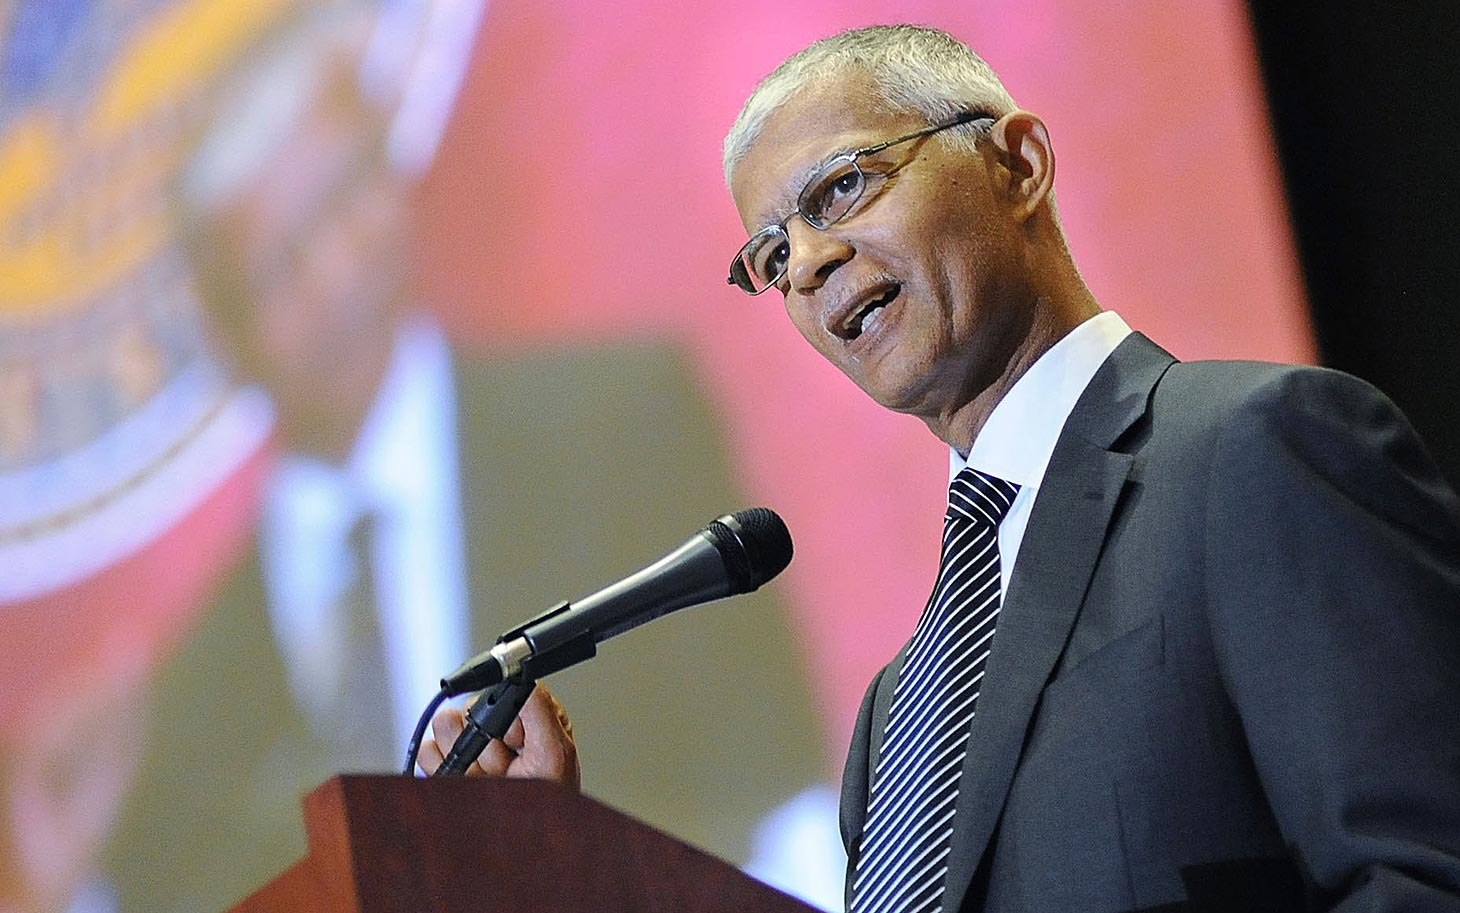 F4DC remembers Chokwe Lumumba